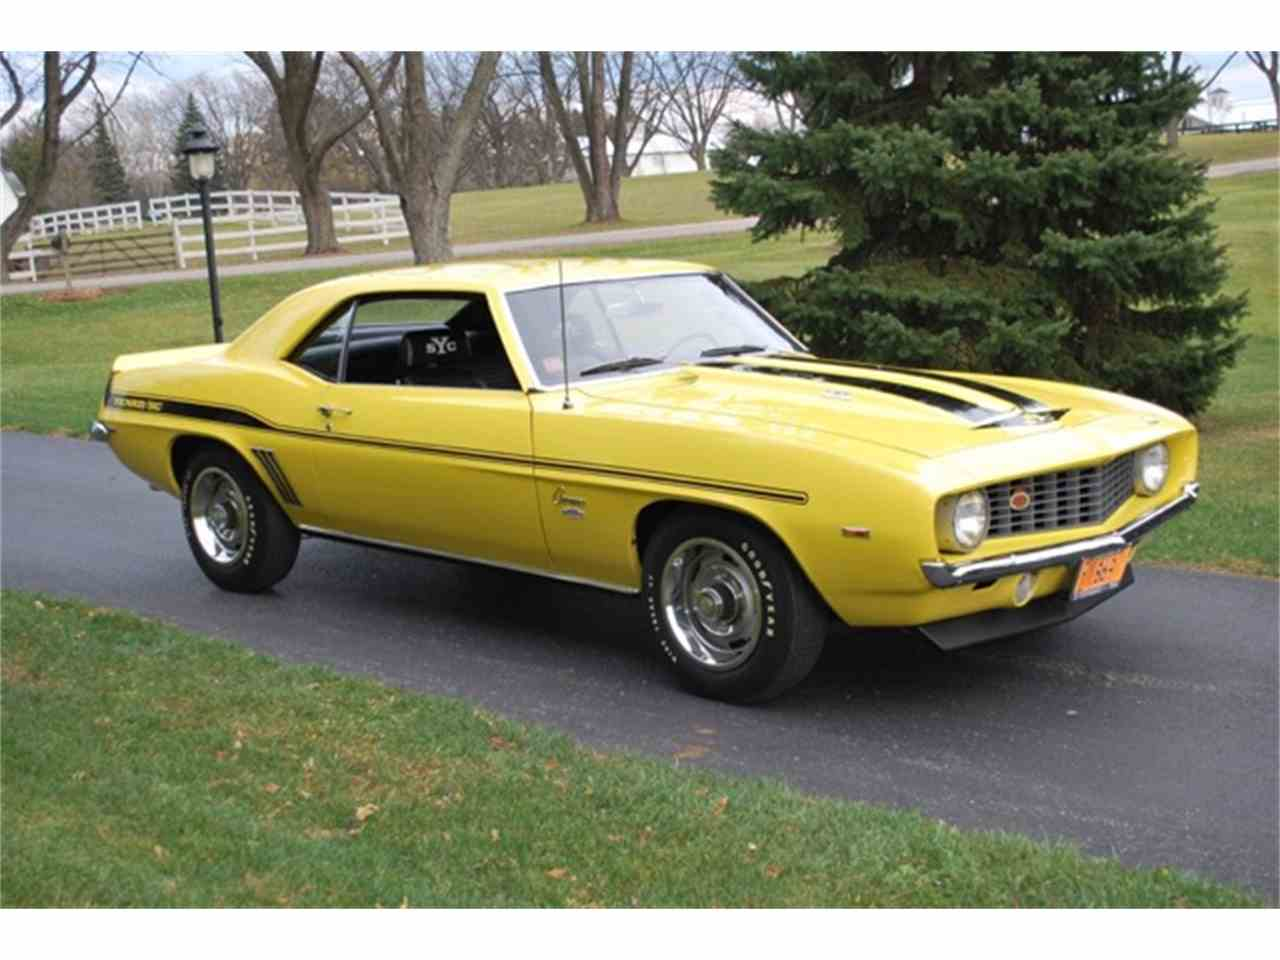 for sale 1969 chevrolet camaro copo yenko in lincolnshire illinois. Cars Review. Best American Auto & Cars Review